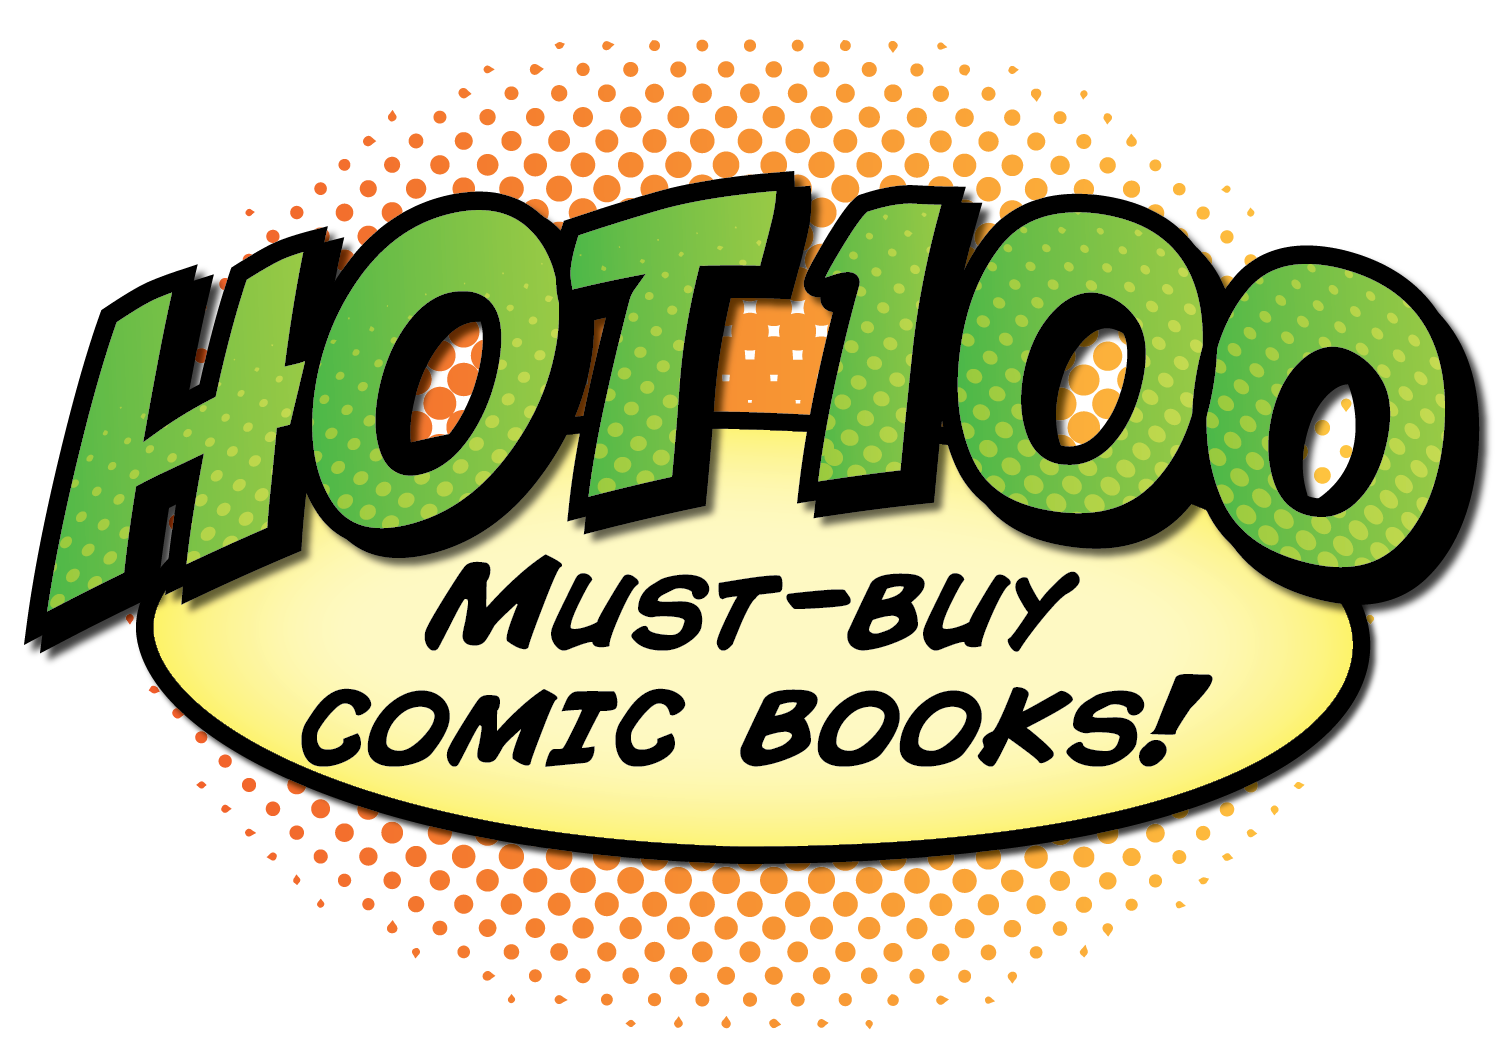 Comic book muzzle flash clipart clipart library stock 100 Hot Comics You Should Buy Now! clipart library stock